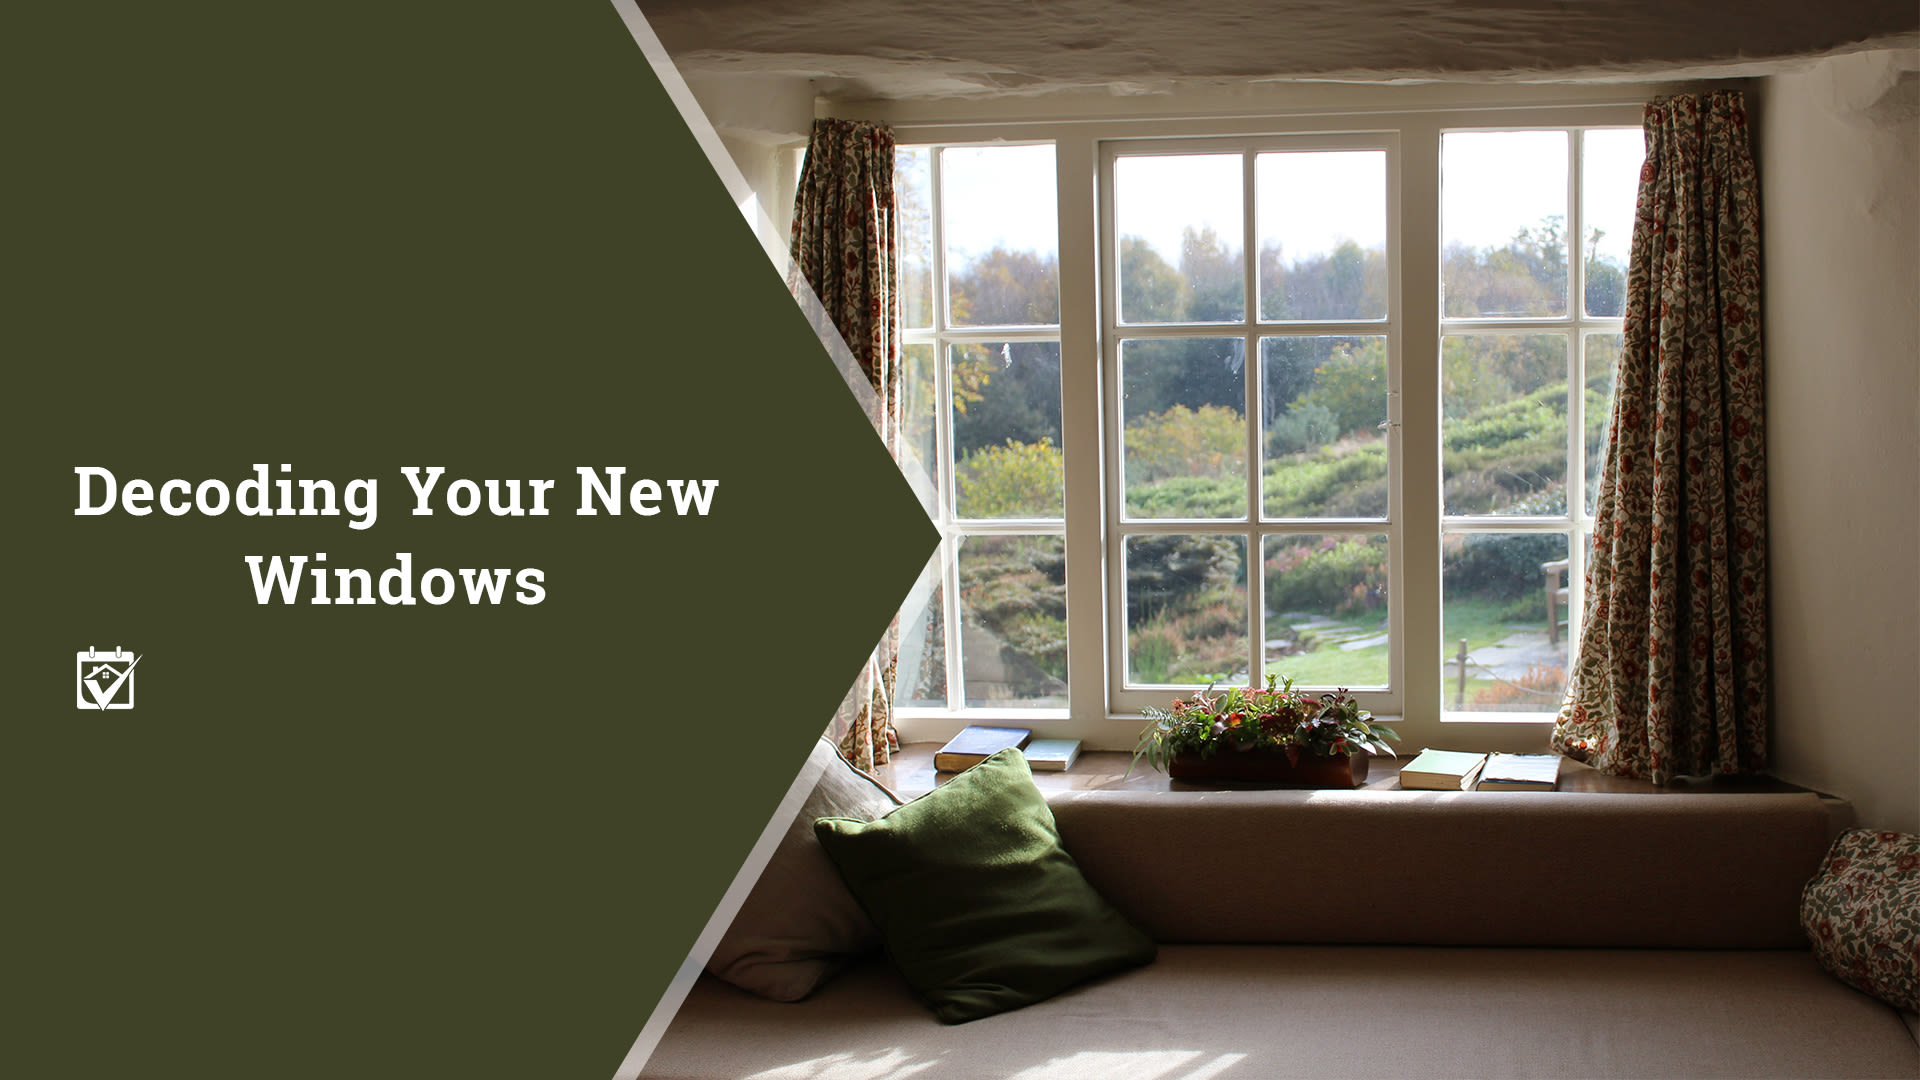 Decoding Your New Windows